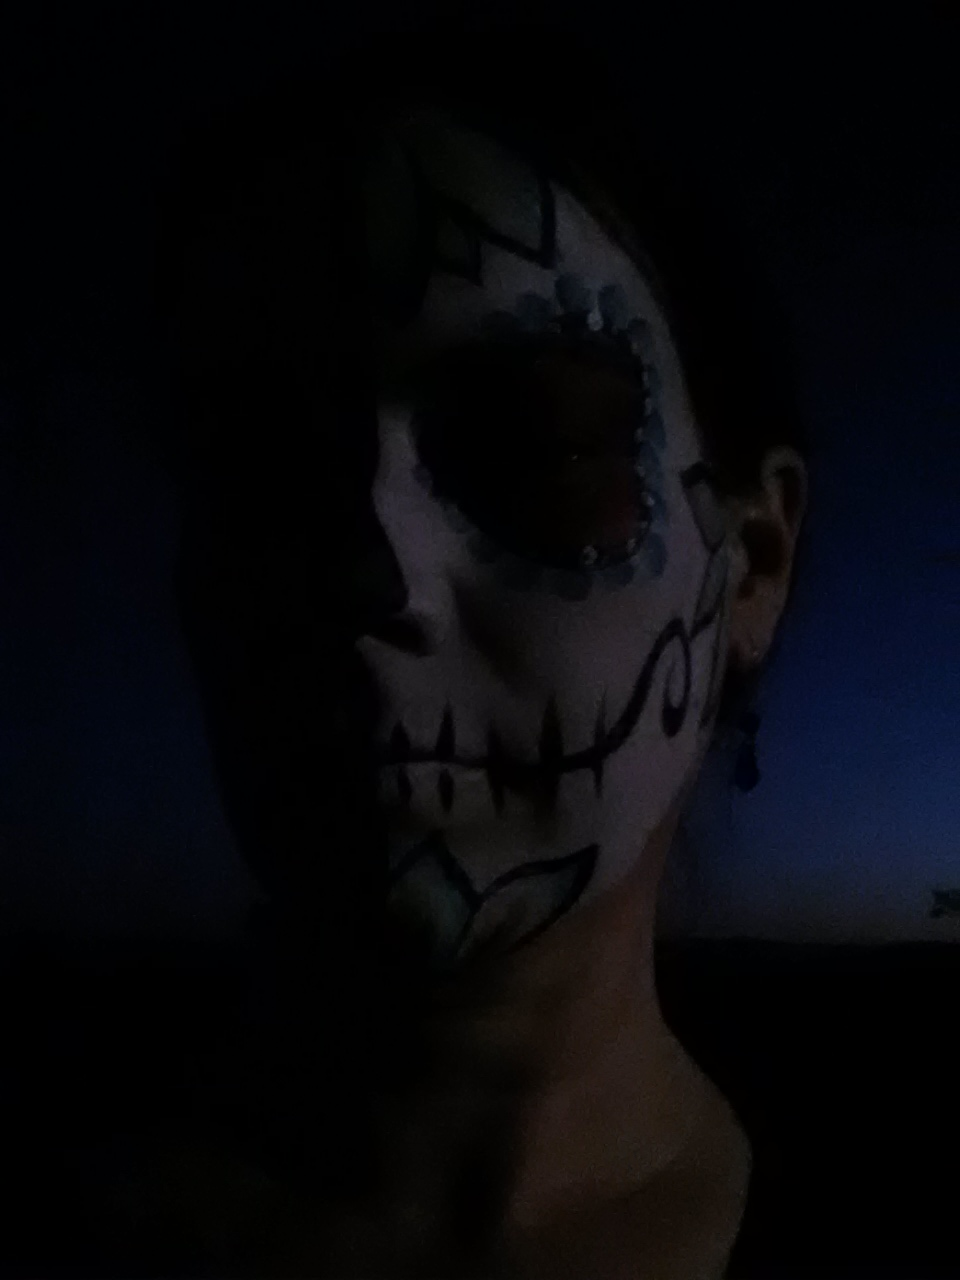 selfie as calavera